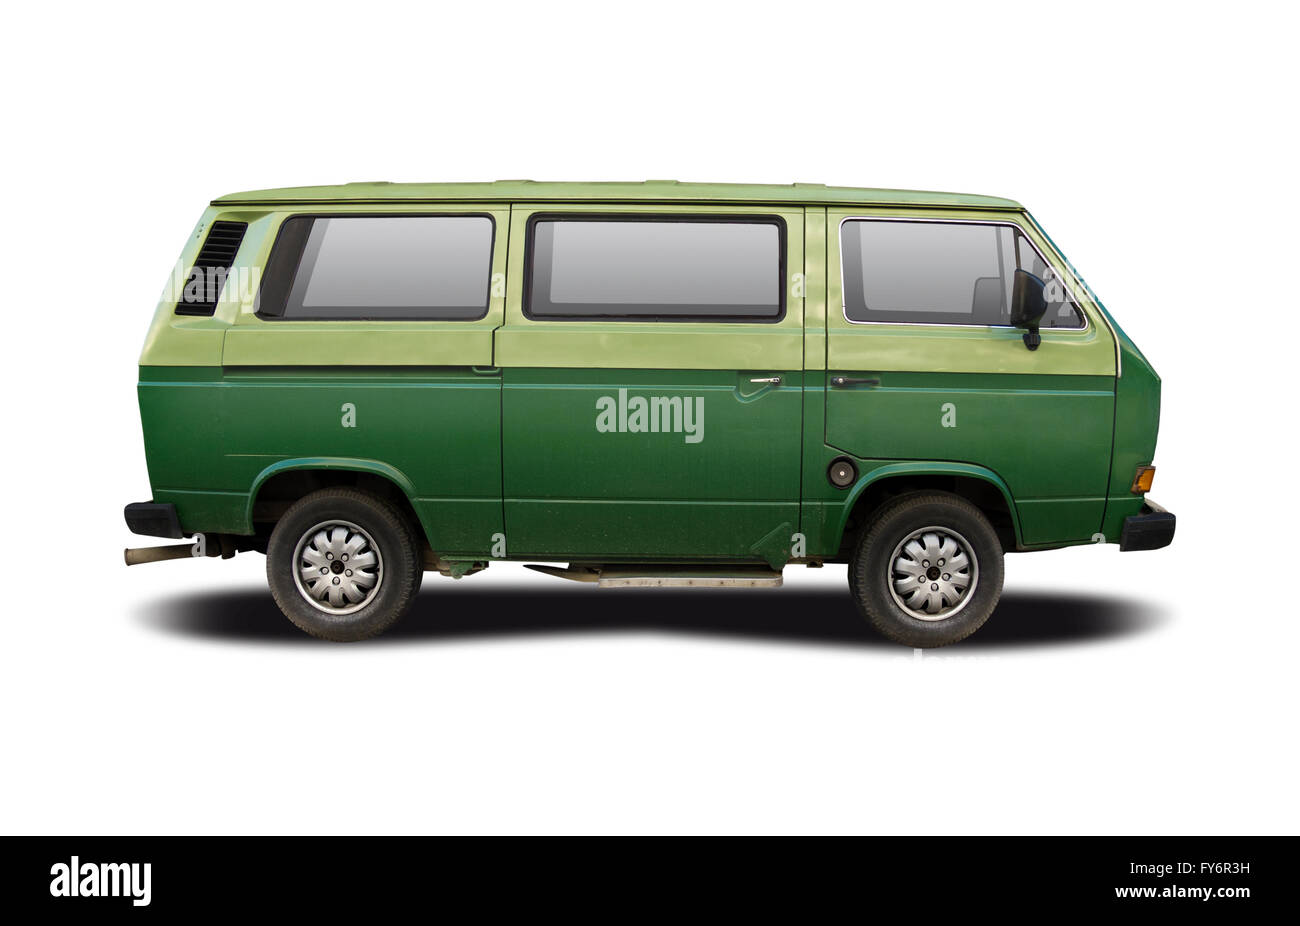 Green Camper Van Side View Isolated On White